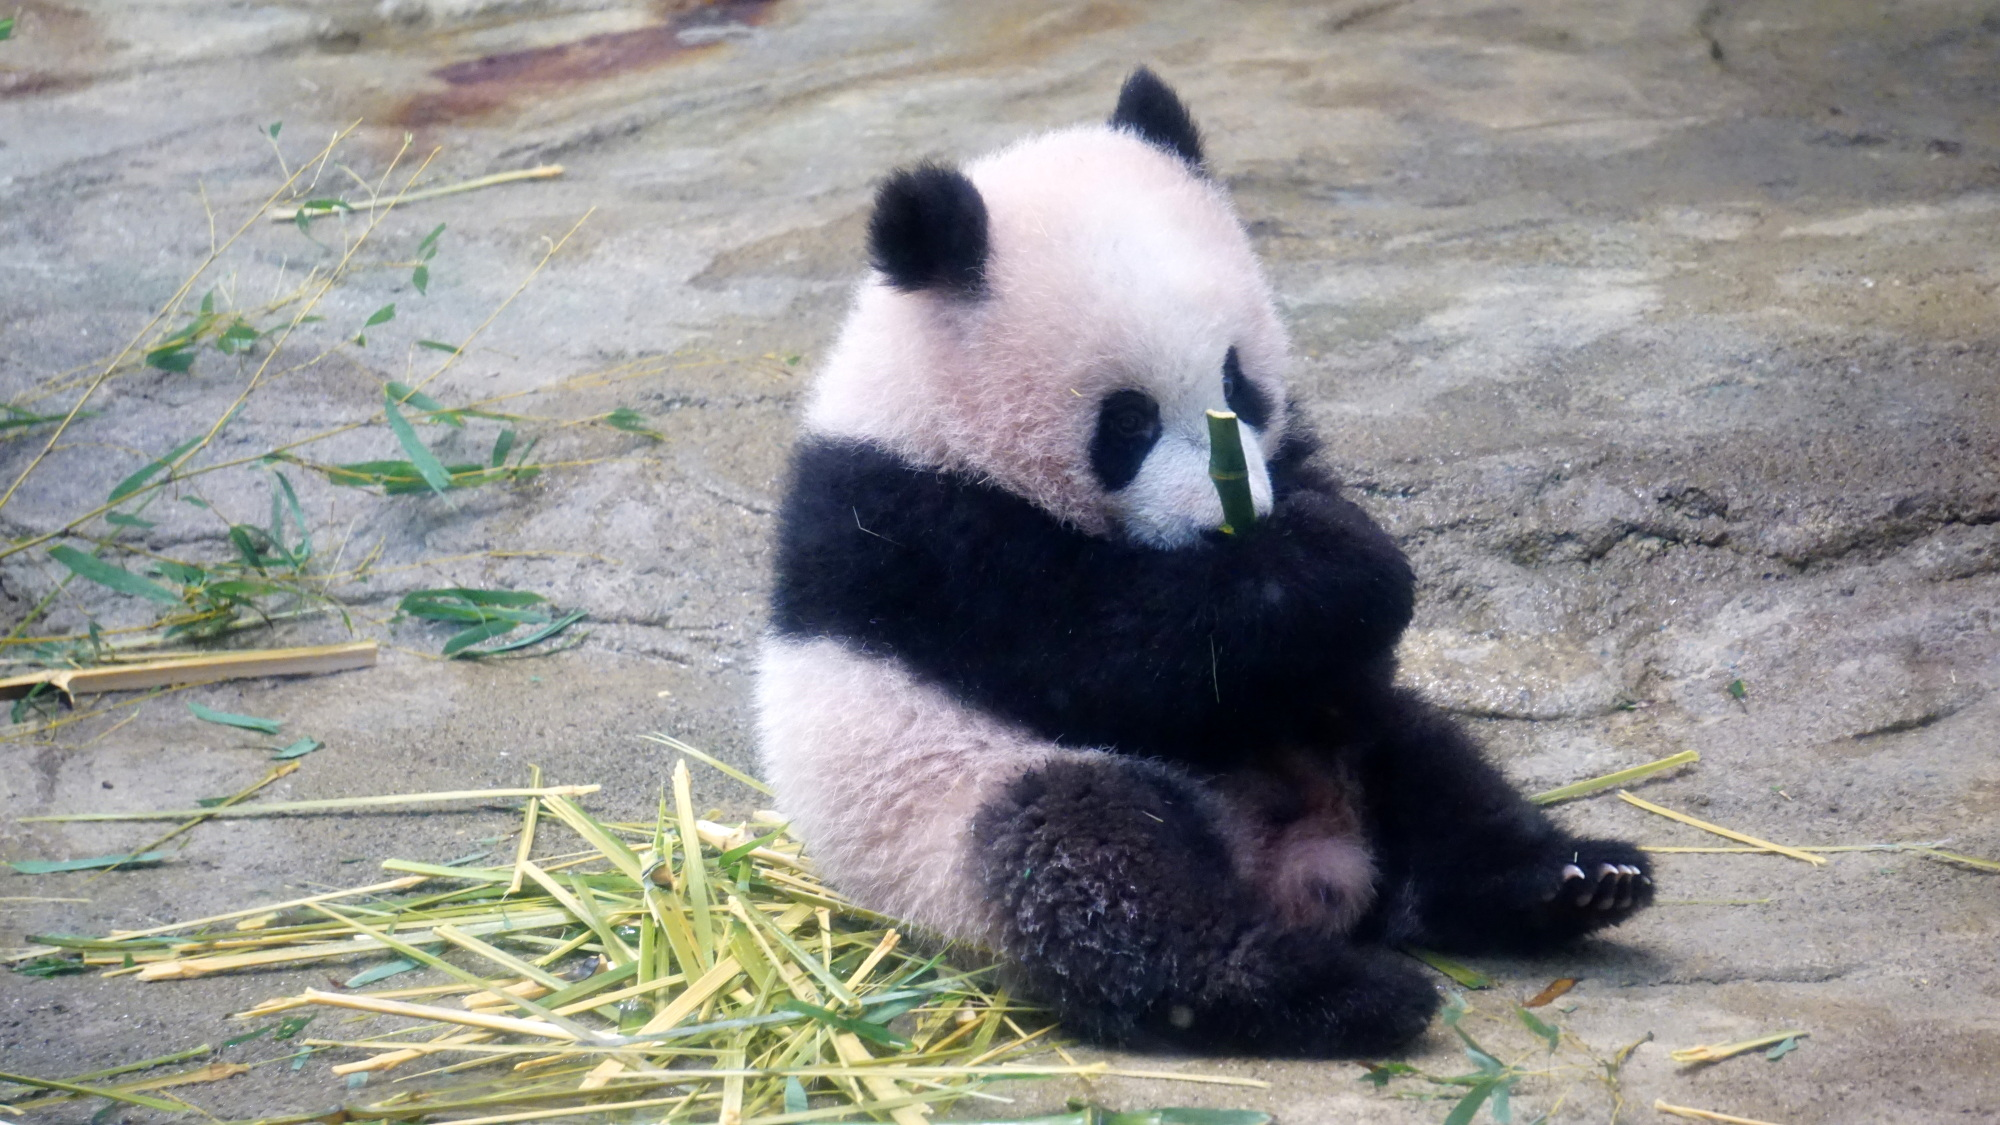 Xiang Xiang, a six-month-old giant panda cub, is seen at Ueno Zoo in Tokyo's Koto Ward on Monday ahead of her first public appearance on Tuesday. | MAGDALENA OSUMI